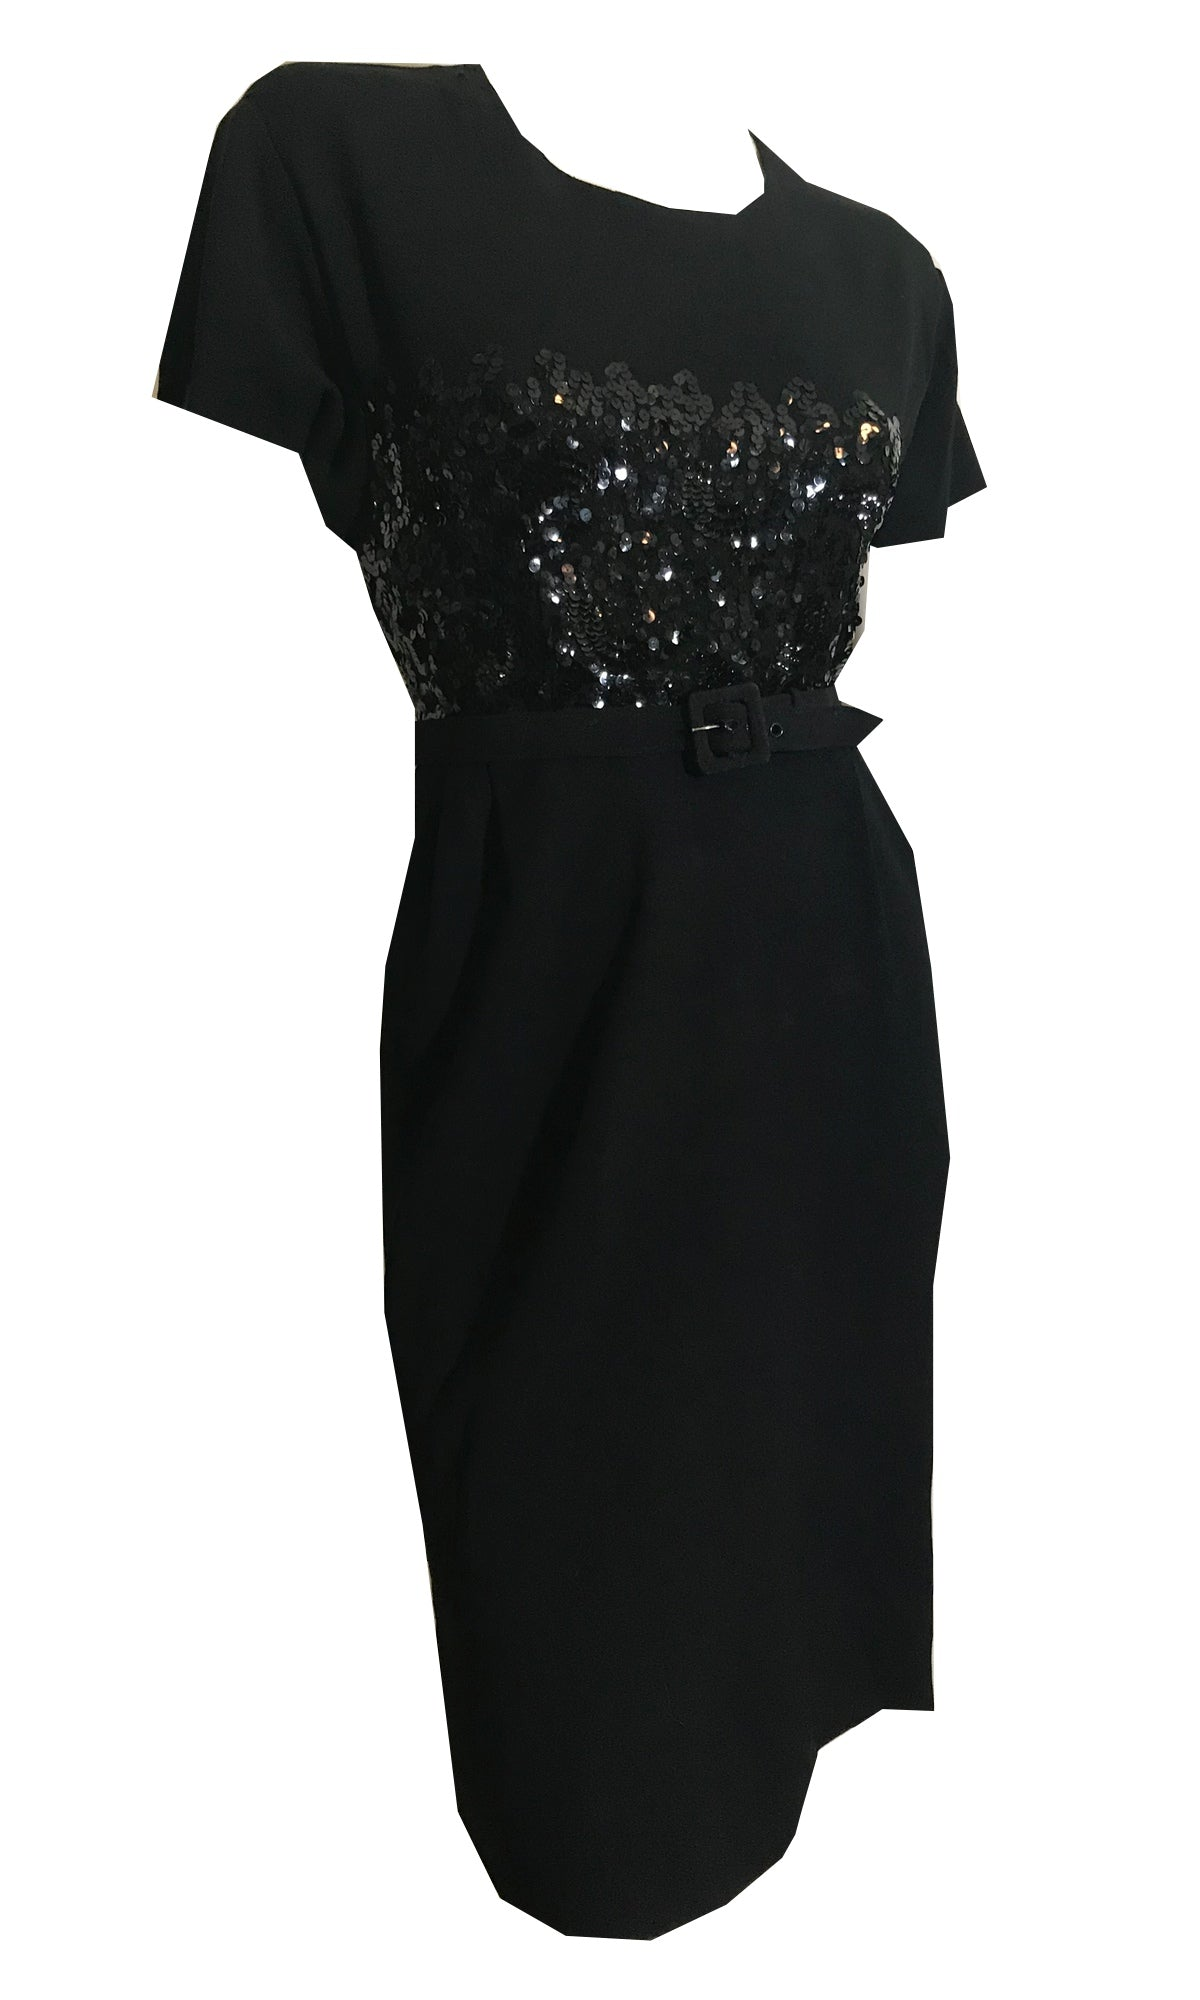 Black Crepe Rayon Cocktail Dress with Sequined Bodice Petite circa 1940s